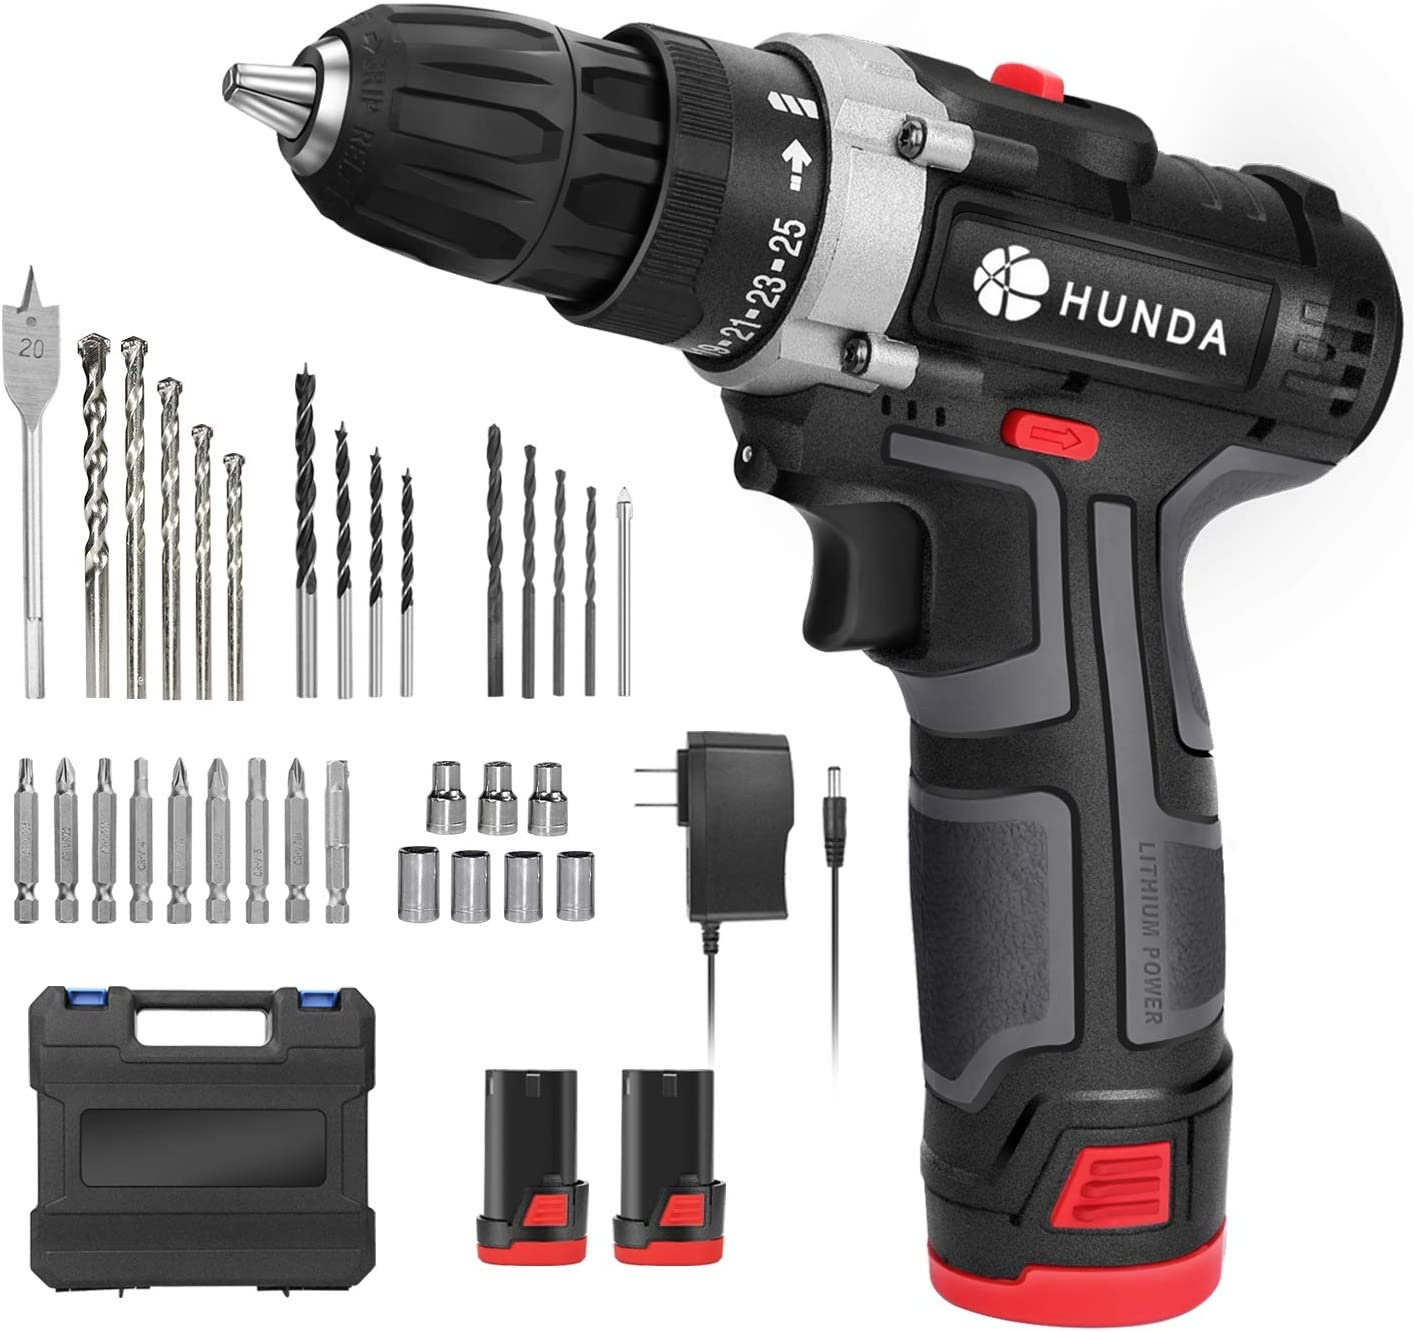 Electric Drill Set, 12.8V Cordless Drill Driver with 2Pcs 1300Ah Batteries, Household Tool Kit Portable Screwdriver - 2 Adjustable Speeds, 25 +1 Torque Settings, LED Light, 31 Pcs Accessory